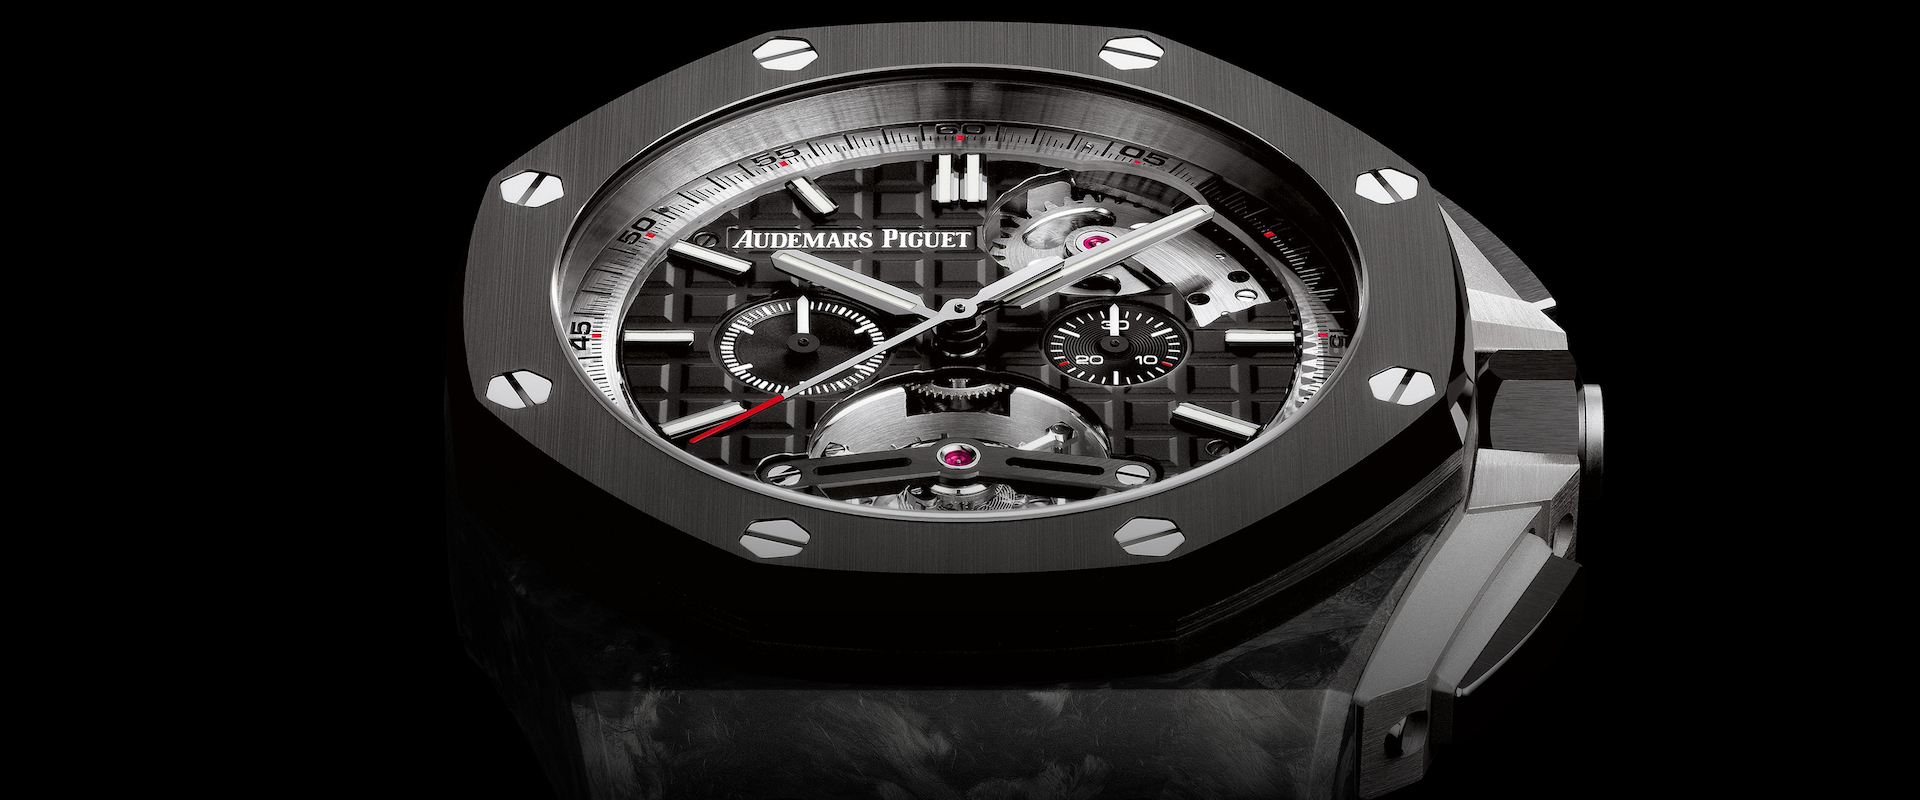 Audemars Piguet Royal Oak Offshore Ref. 26550AU, Ref. 26540ST/OR